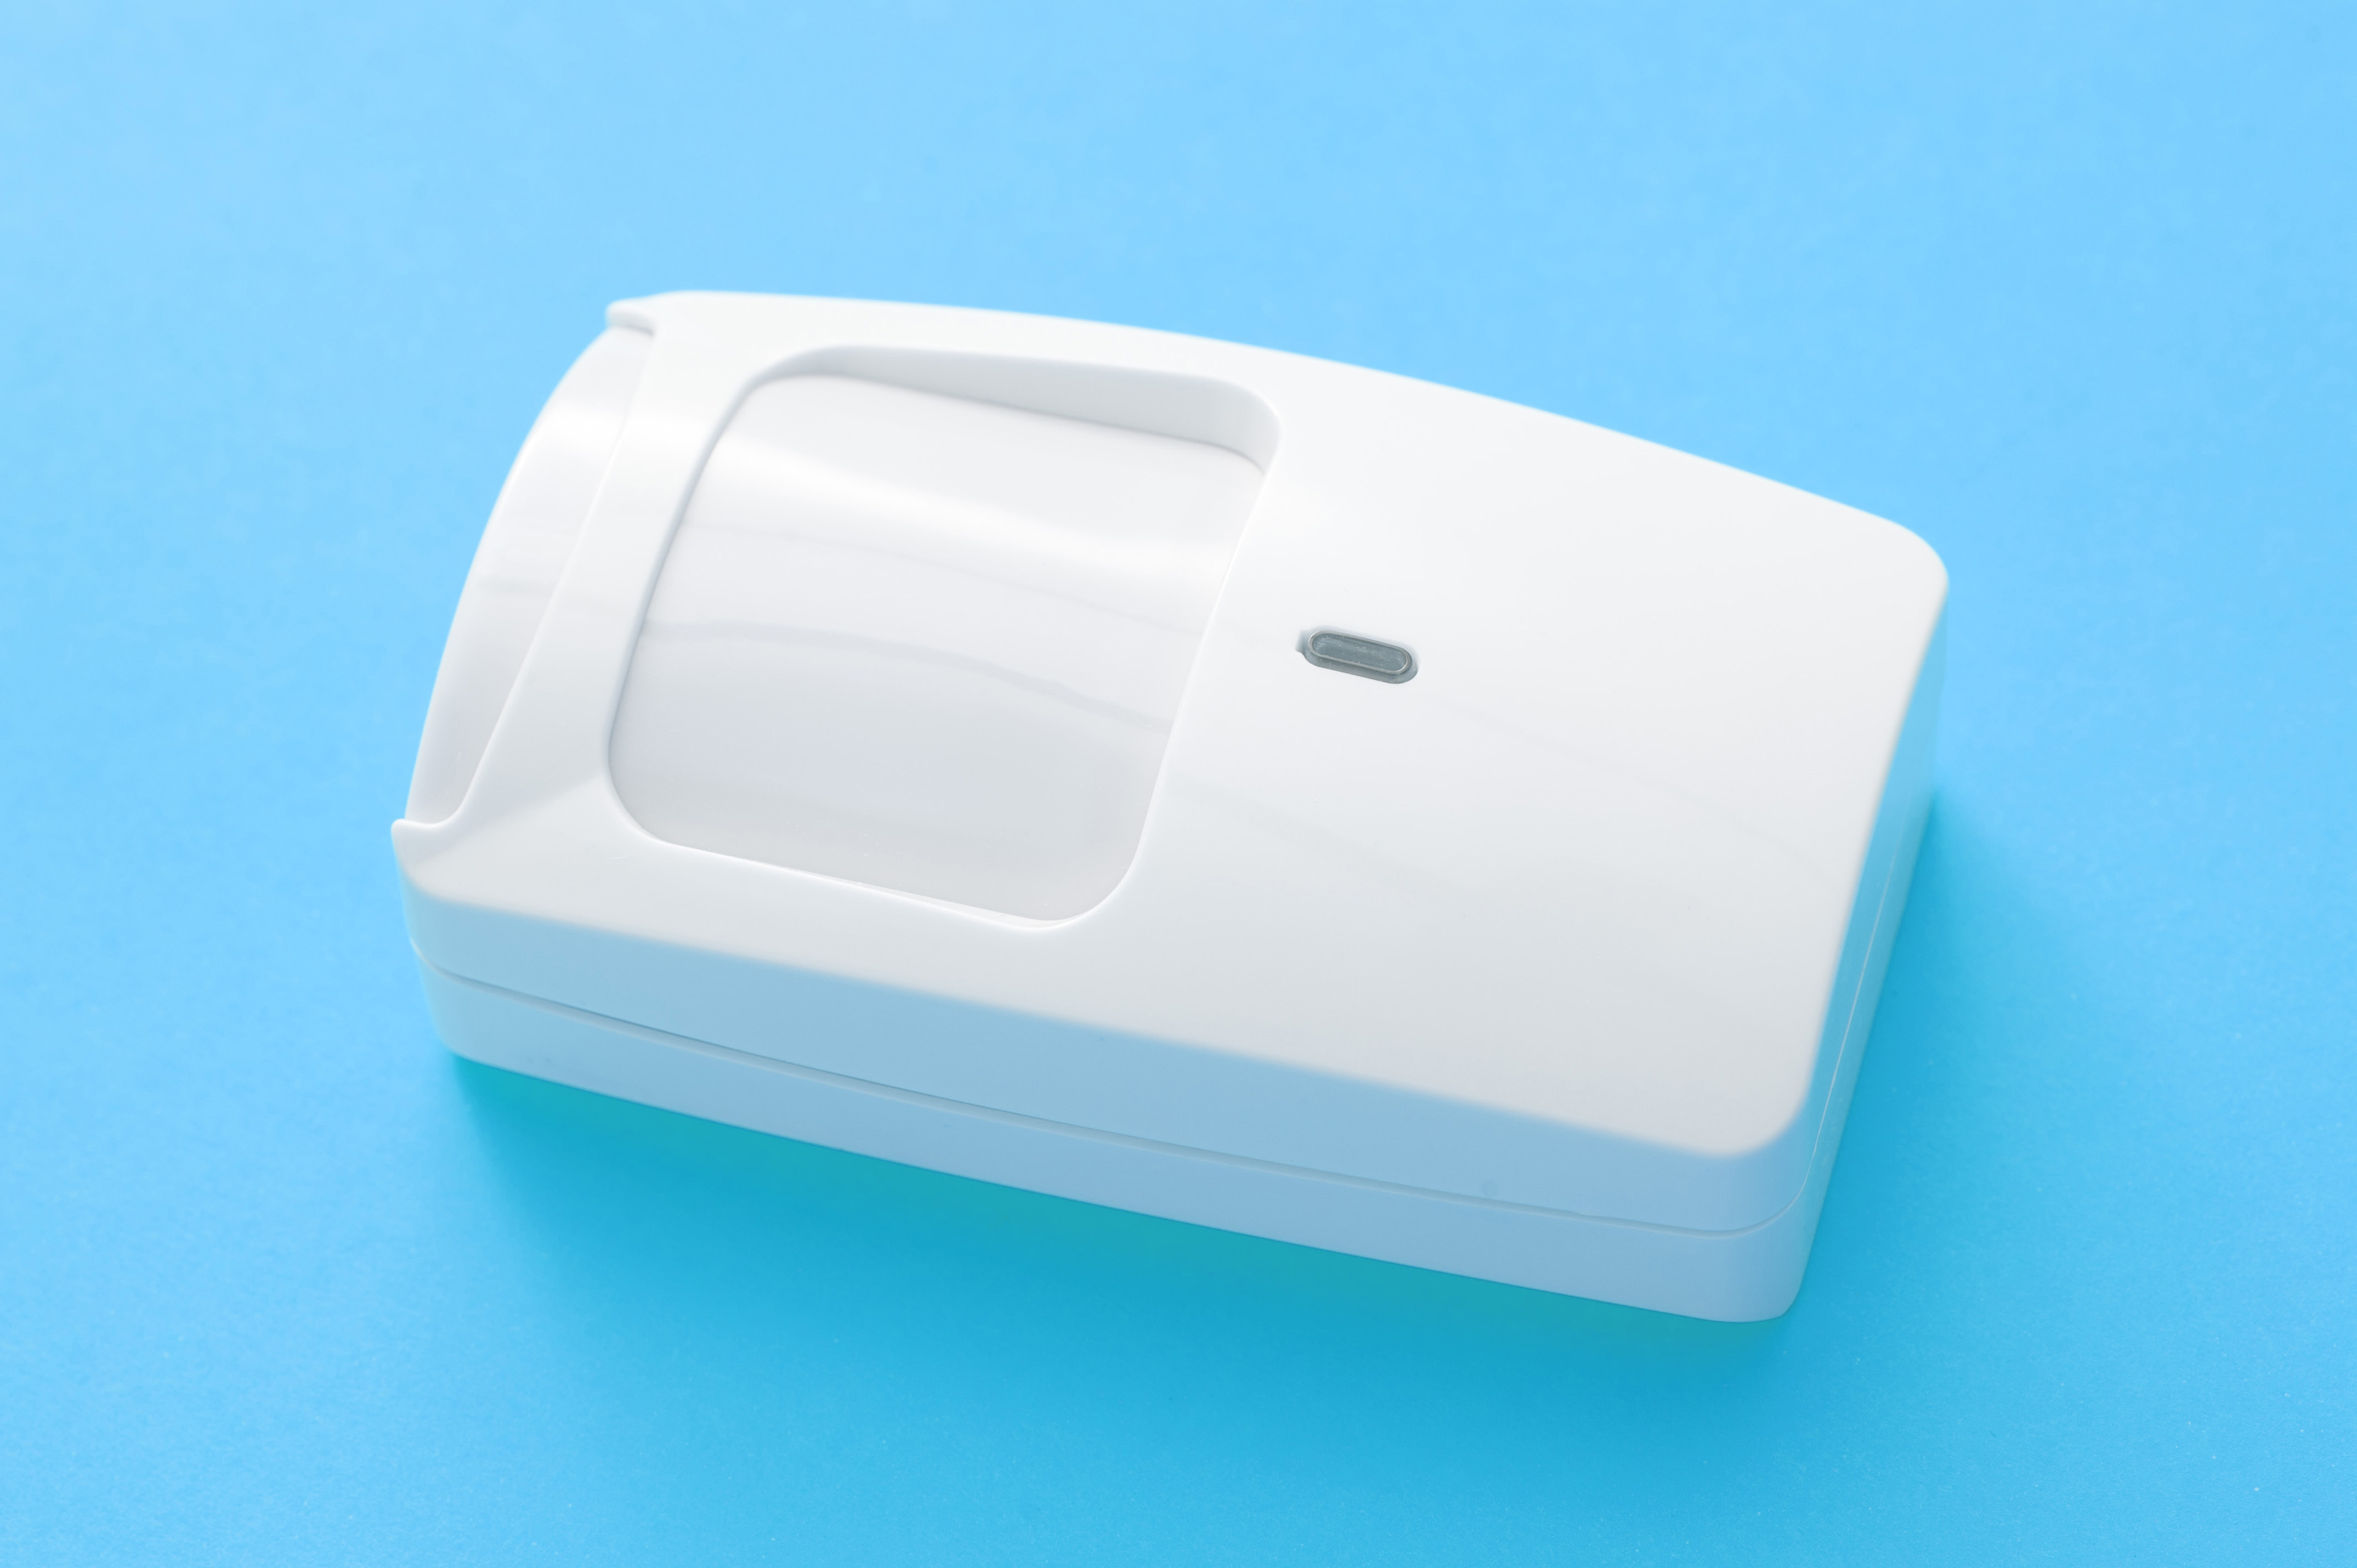 White plastic infrared motion sensor for an alarm system for a building interior lying on a turquoise blue background